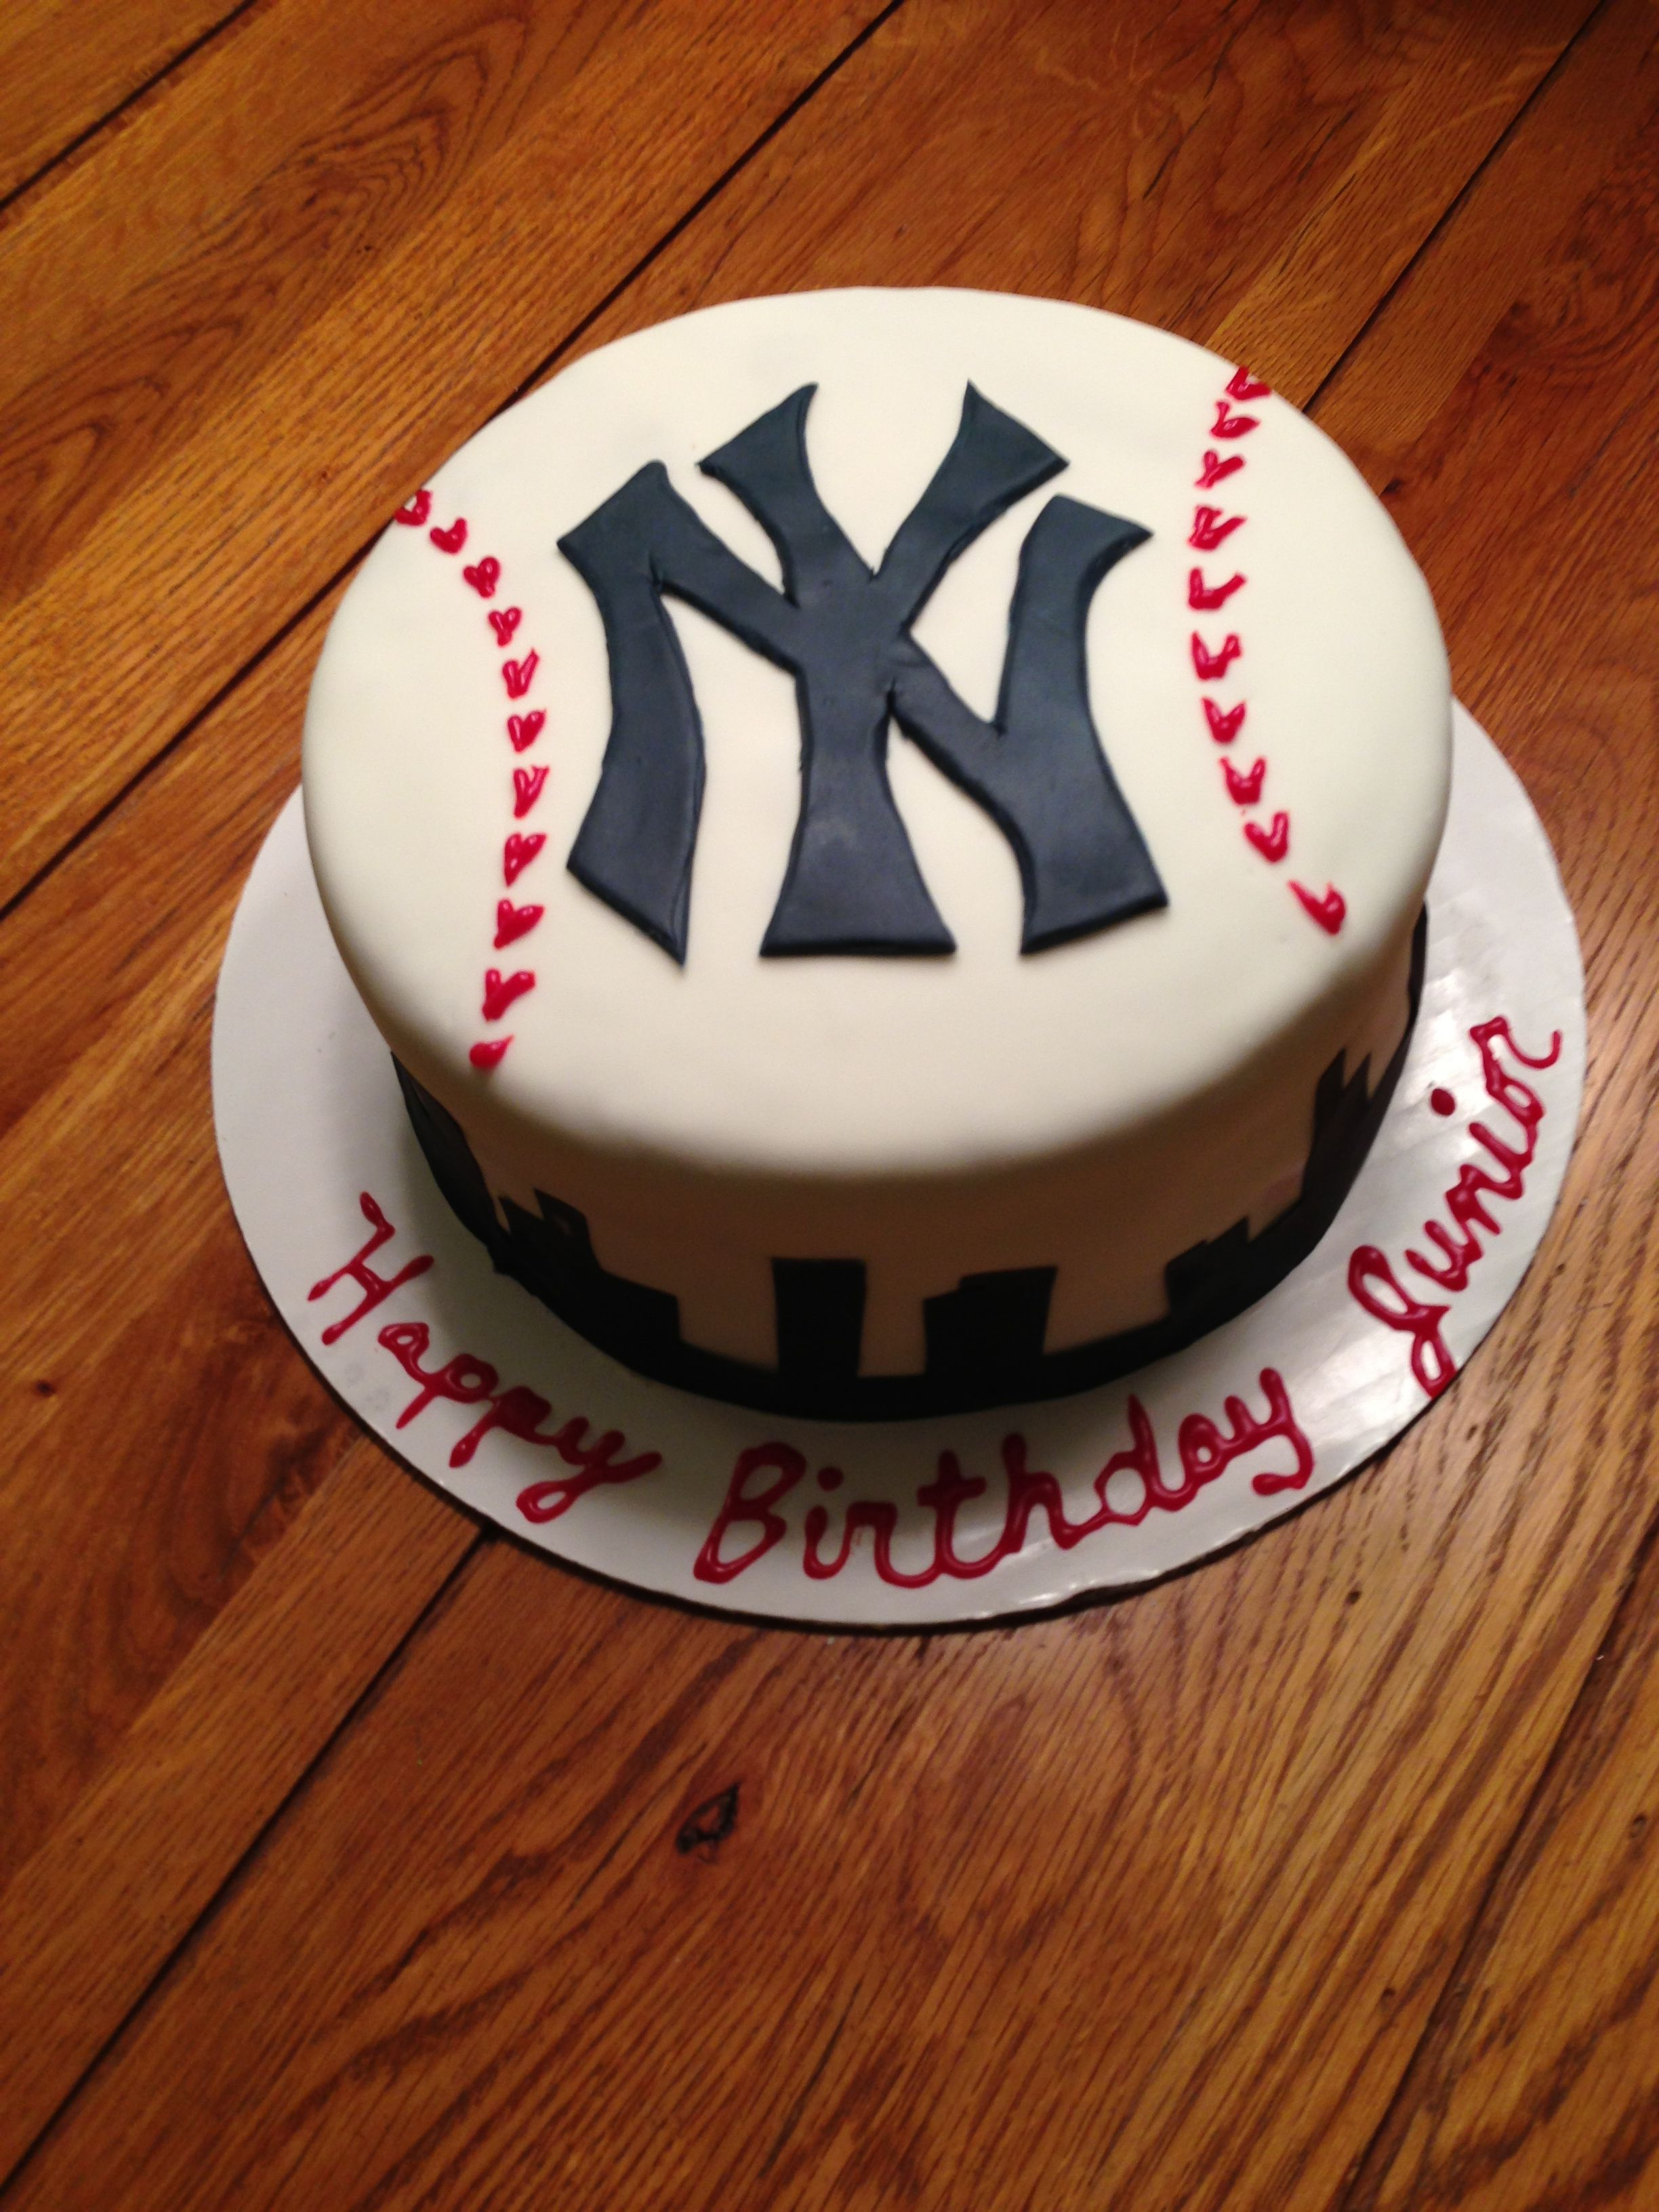 Pin By Christina Blalock On Cakes And Stuff Yankee Cake Grooms Cake Cake